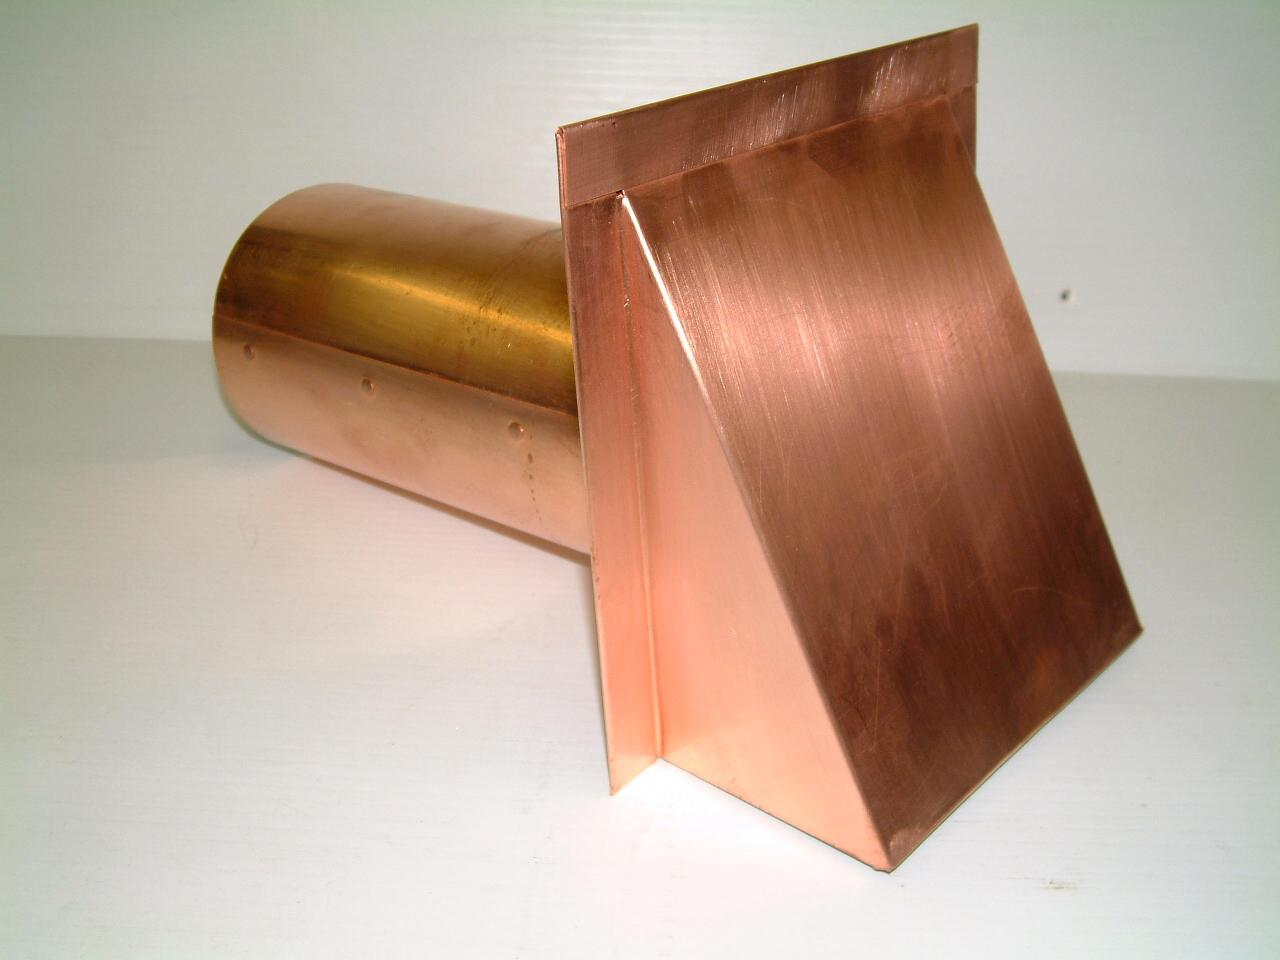 #4E2110 Volko Is Your Copper Source Copper Roof Vents Flashings  Best 133 4 Inch Roof Vent Cap photos with 1280x960 px on helpvideos.info - Air Conditioners, Air Coolers and more